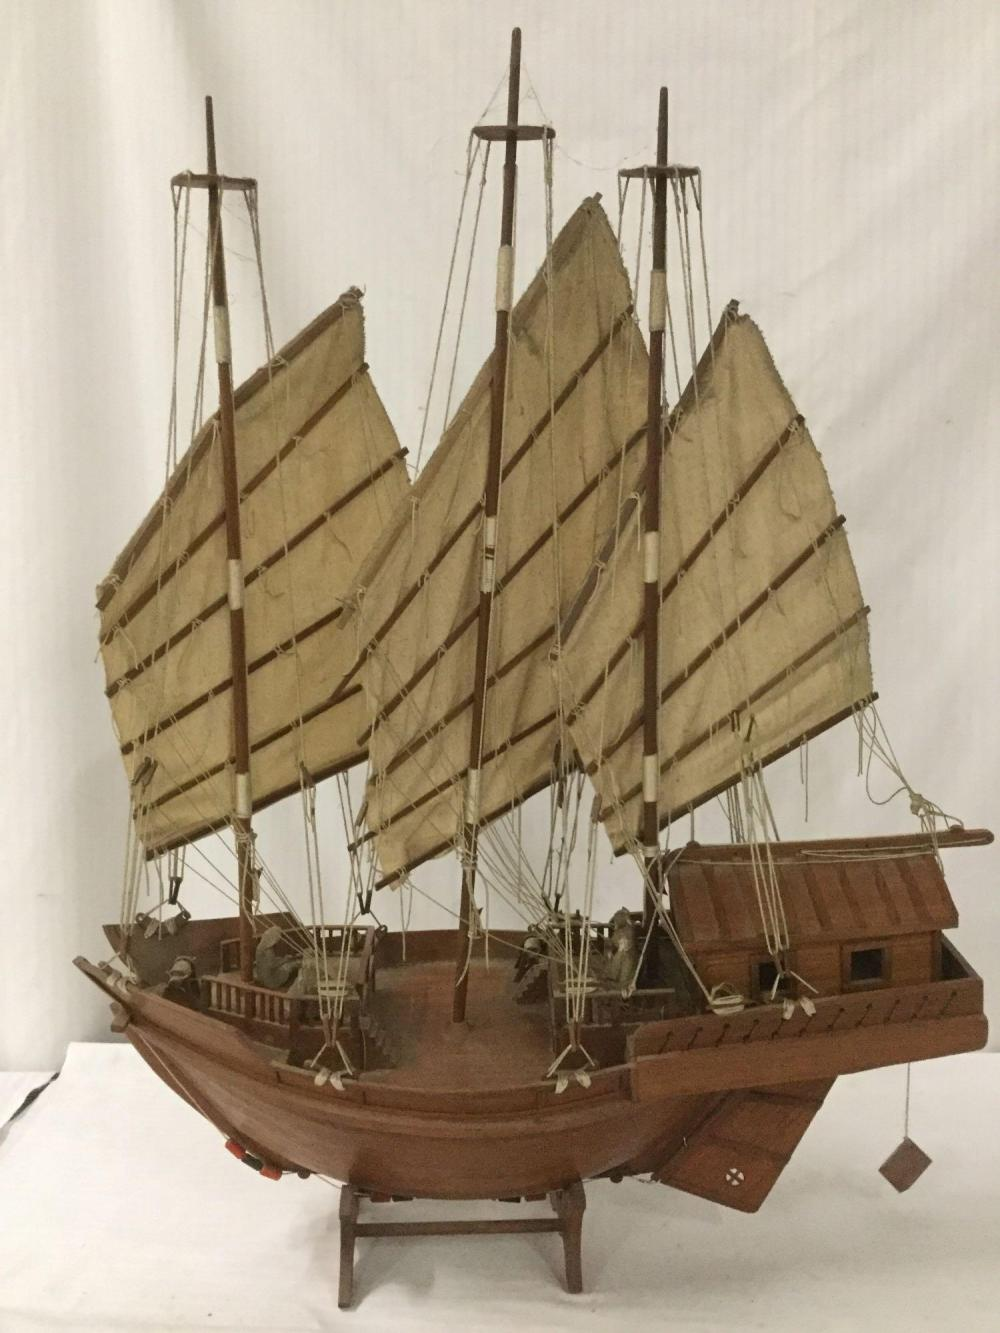 Lot 300: Large vintage wood sailing ship model with cloth sails, wood stand and ceramic Asian passenger